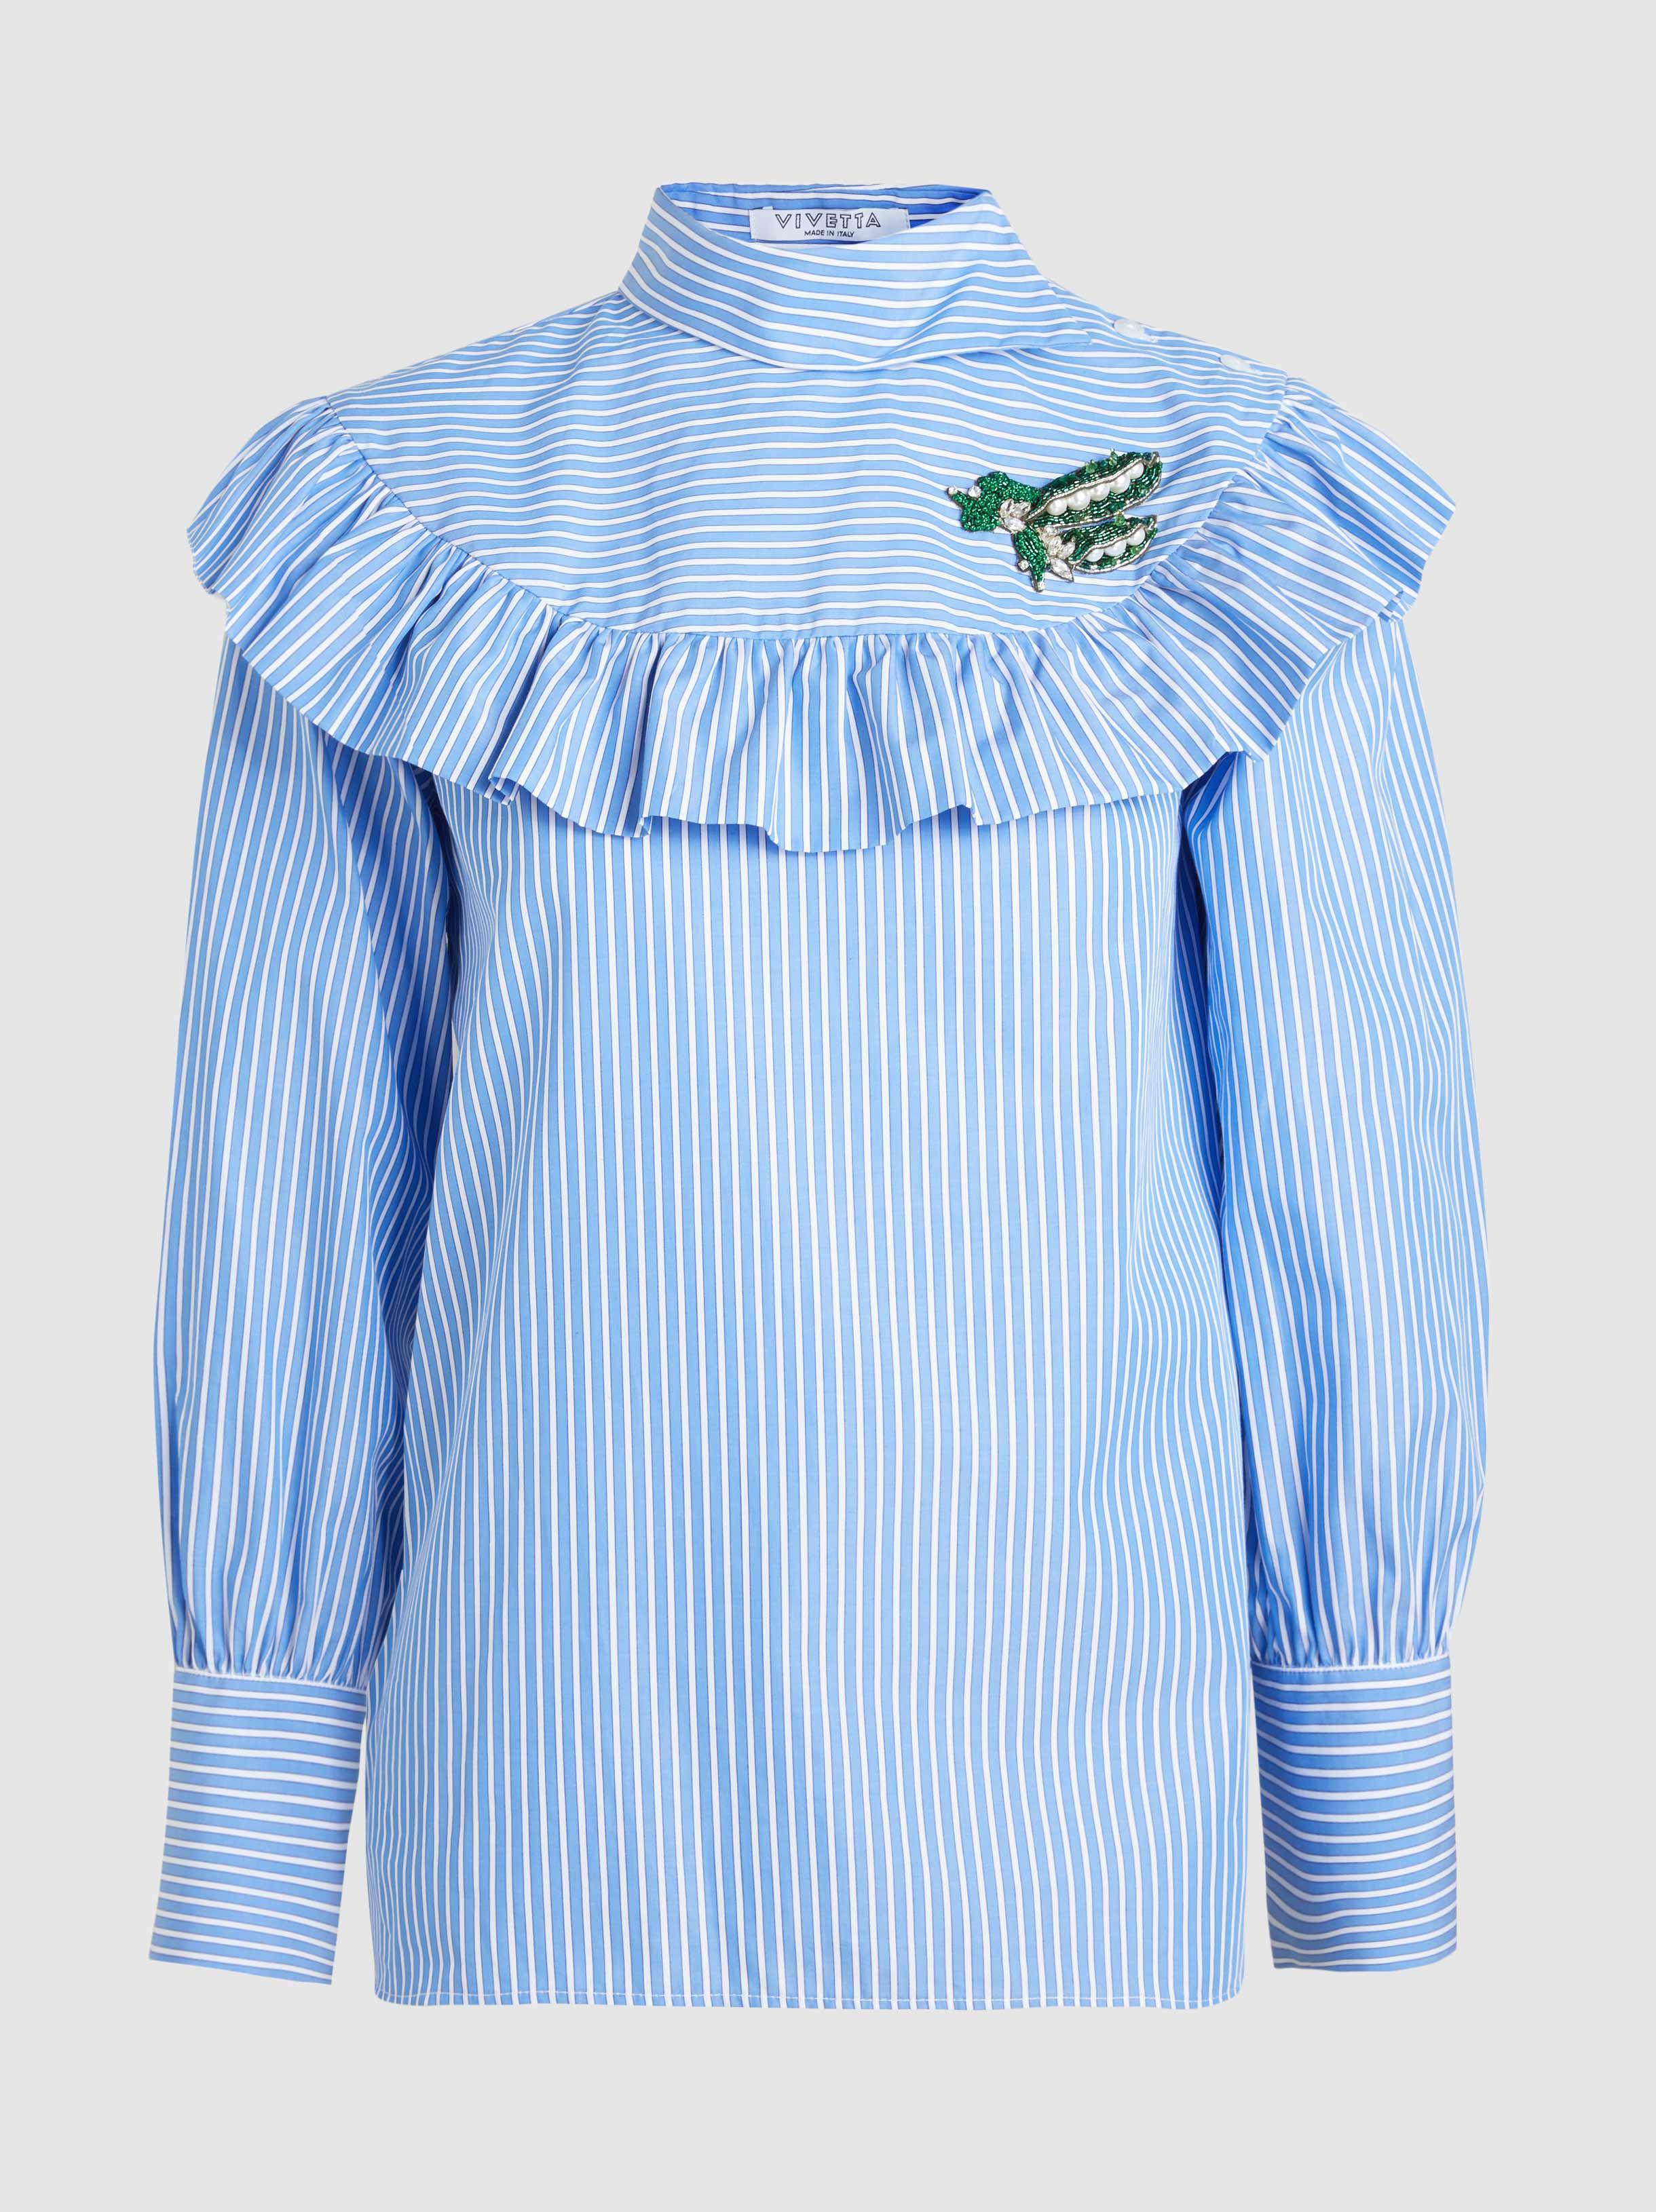 Countdown Package Cheap Price Corriere Embroidered Cotton Blouse Vivetta Release Dates Cheap Price Buy Cheap New Arrival 9OHYg